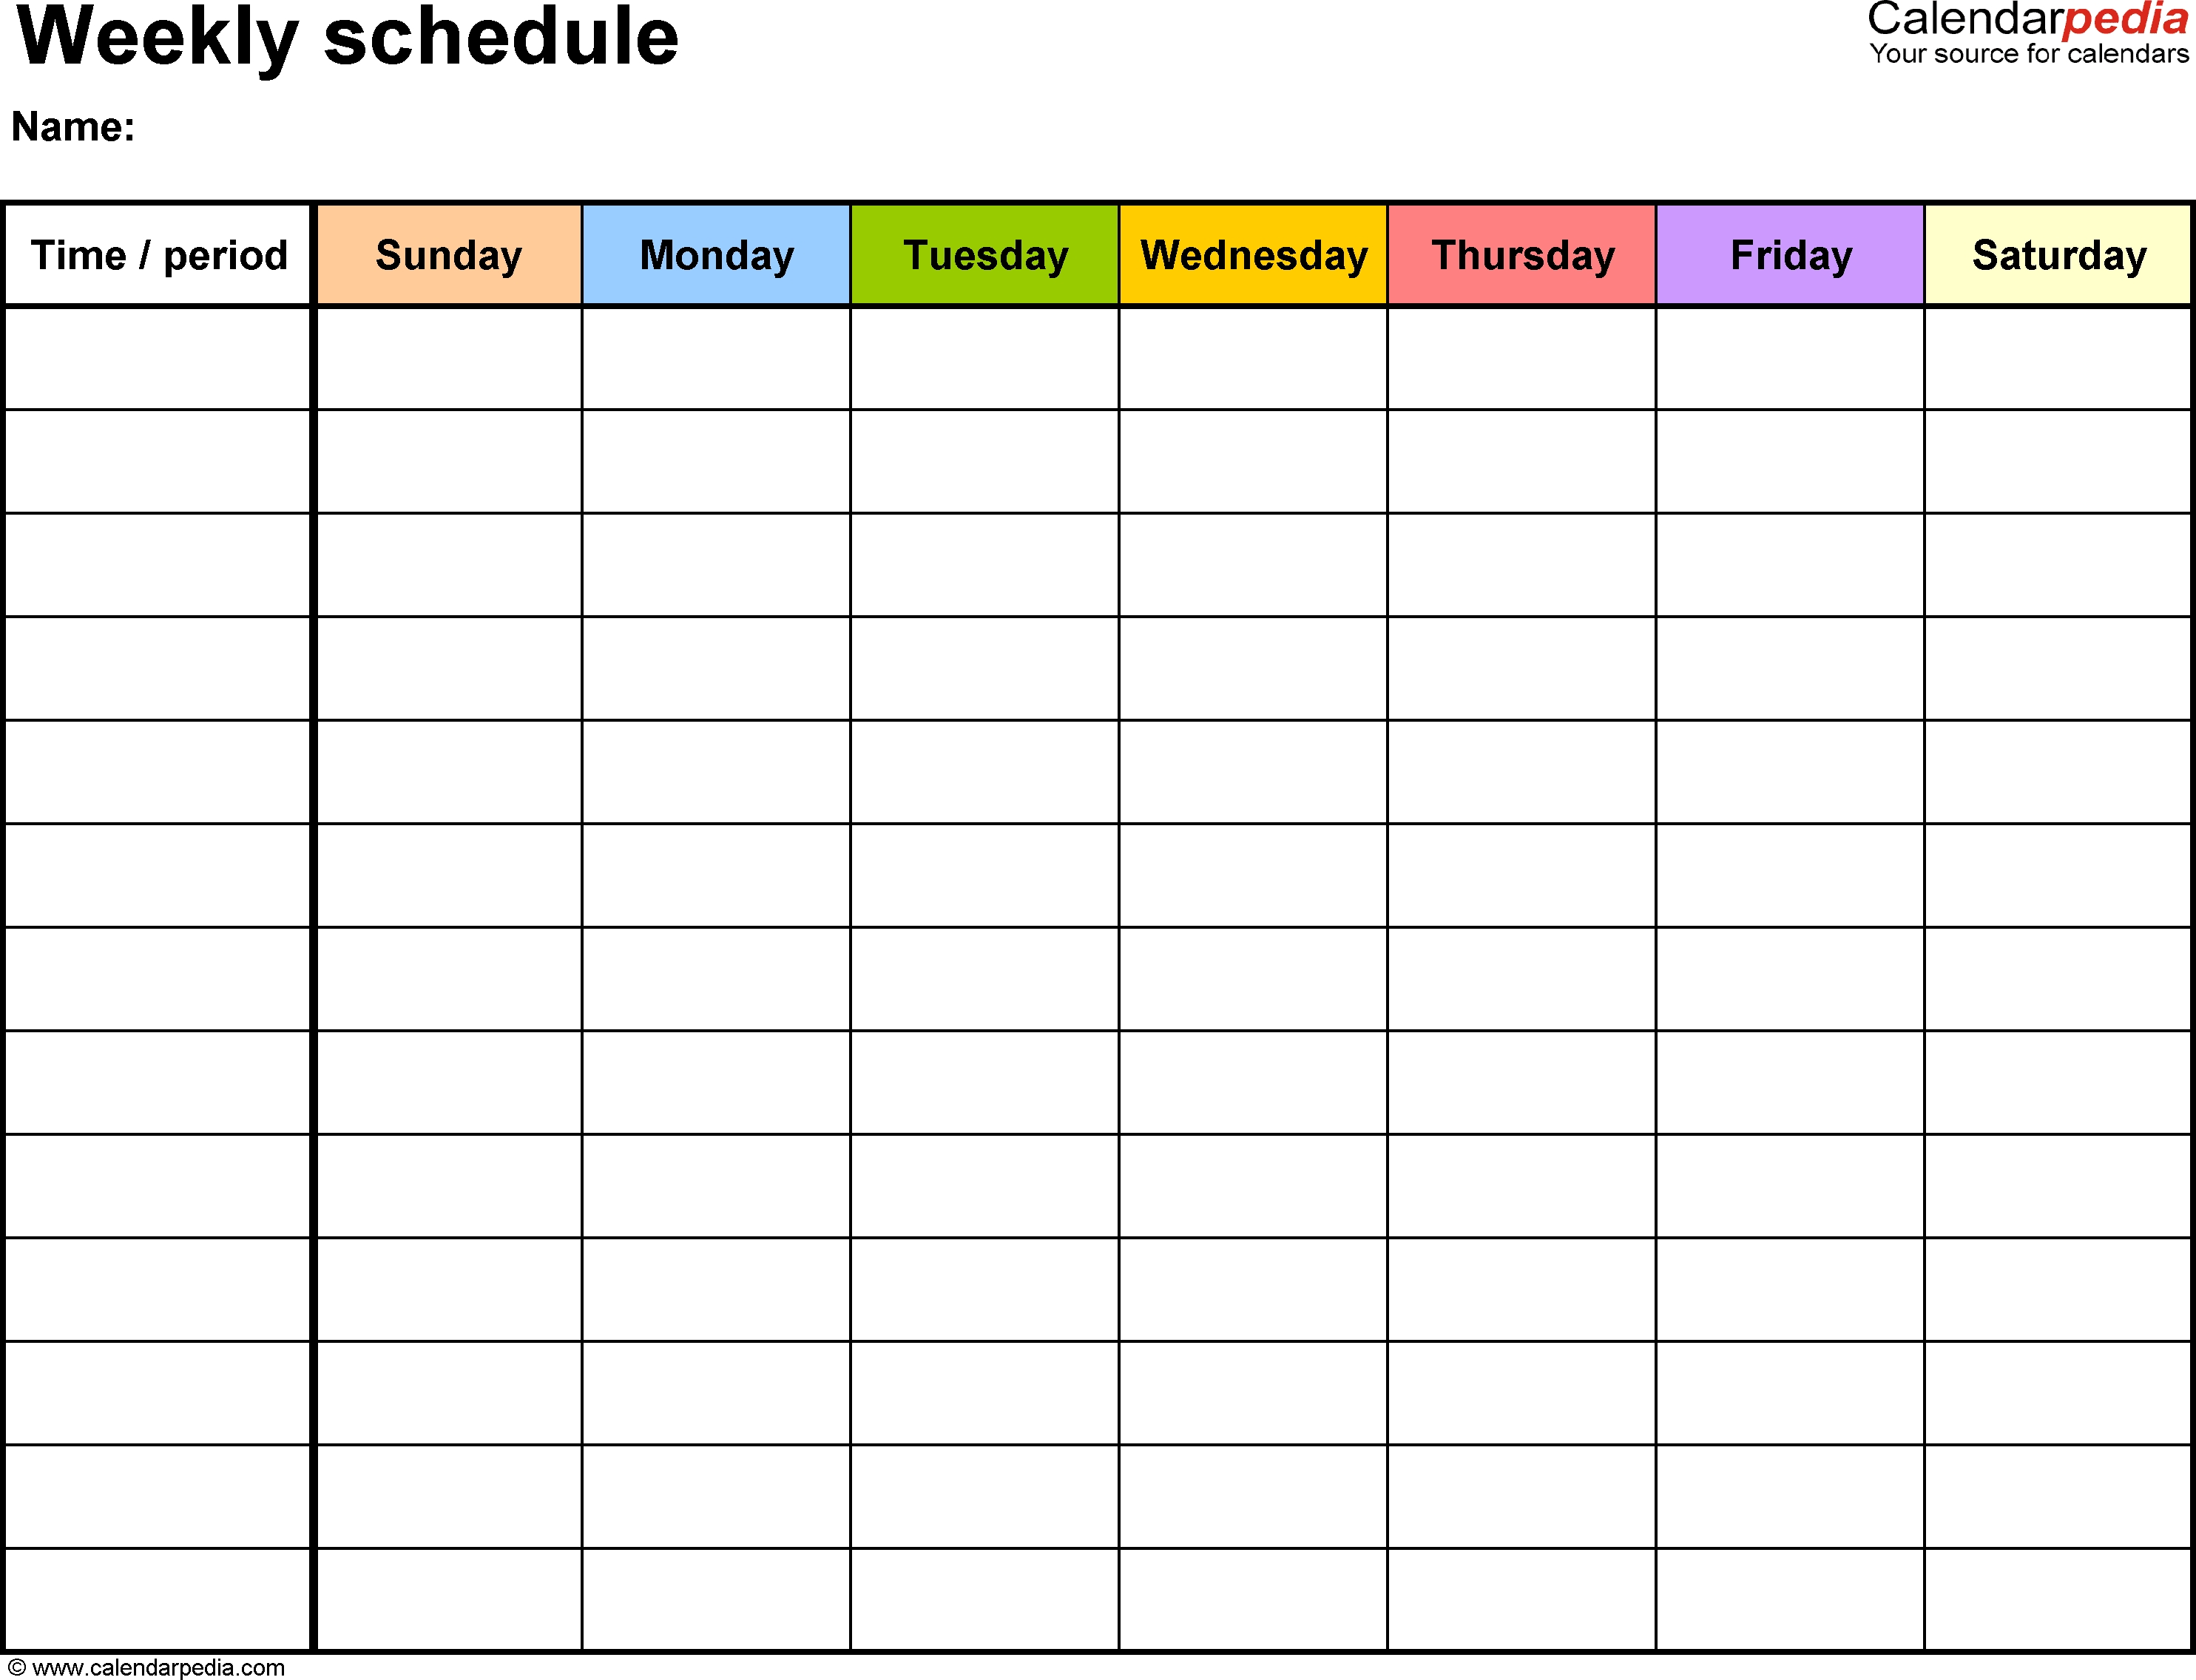 Weekly Schedule Template For Word Version 13 Landscape 1 Page  Xjb